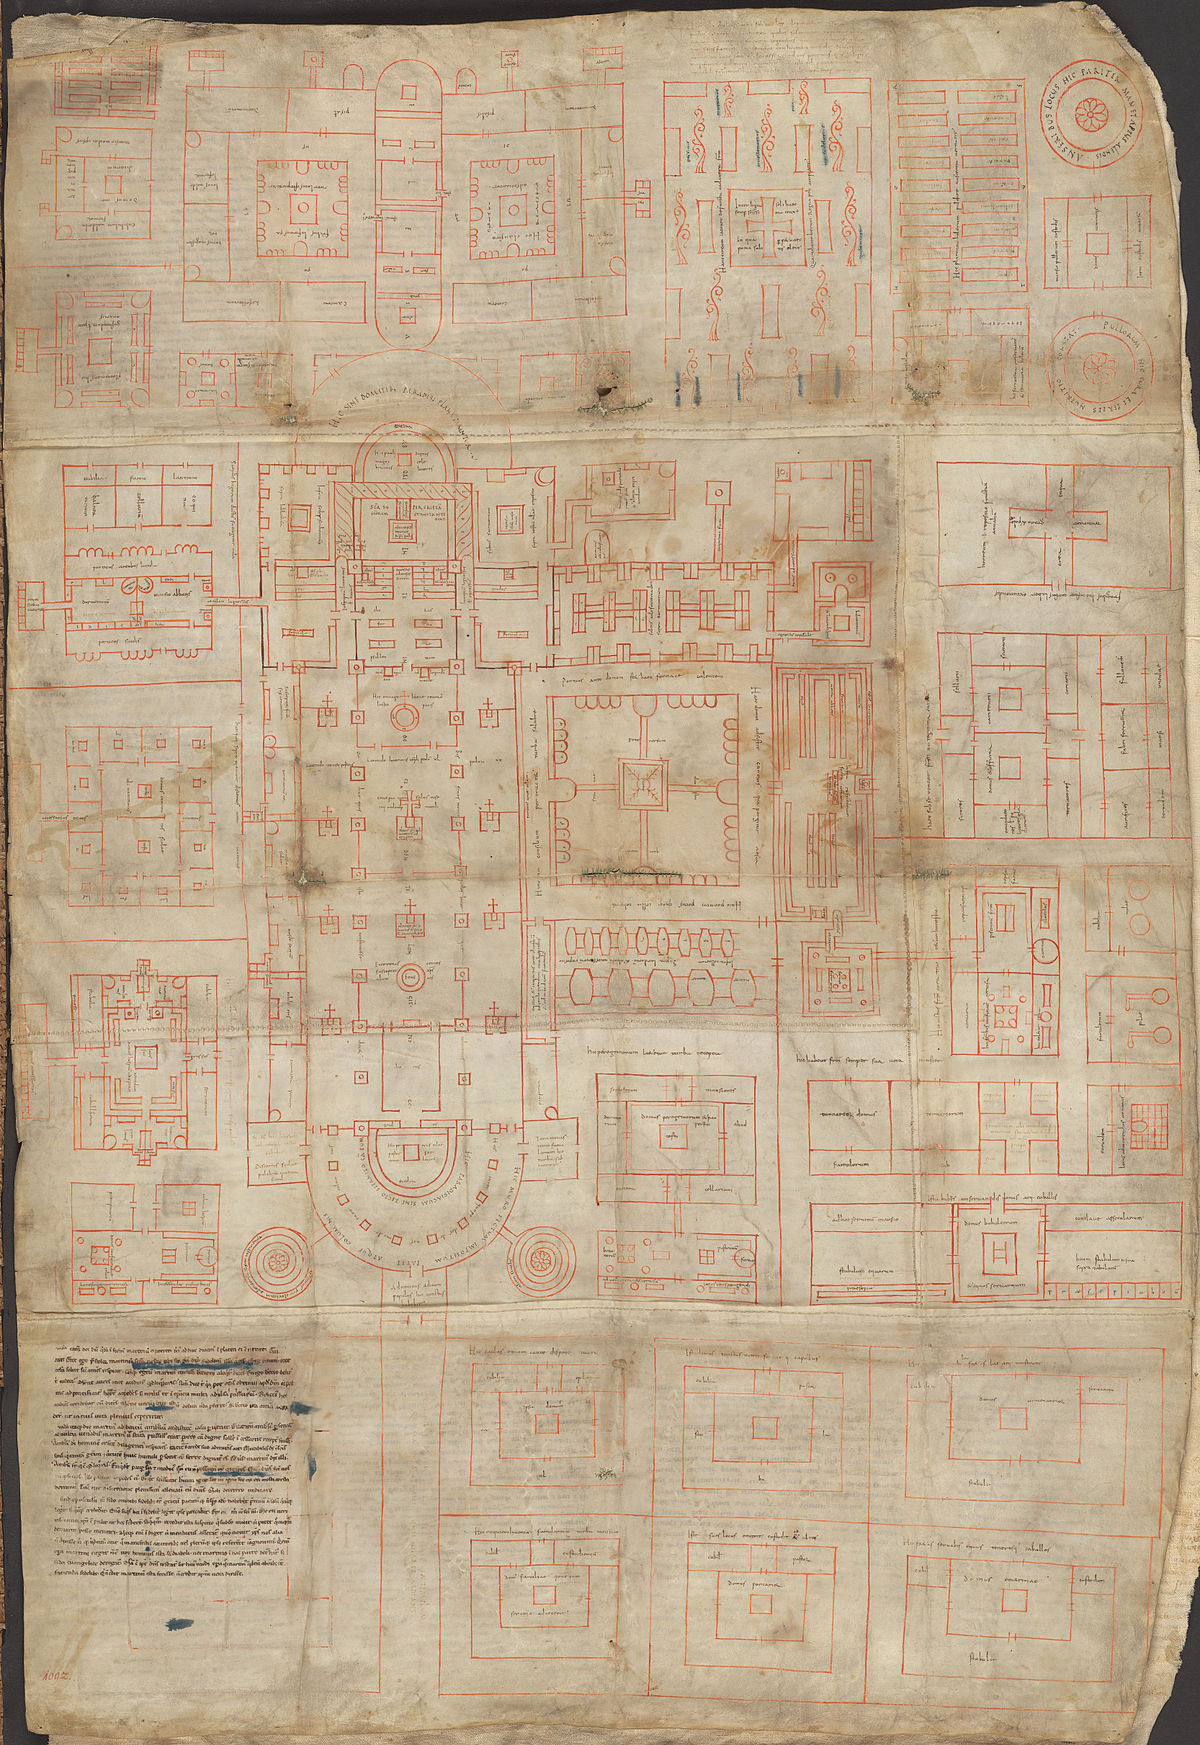 Plan of St. Gall: Wikis